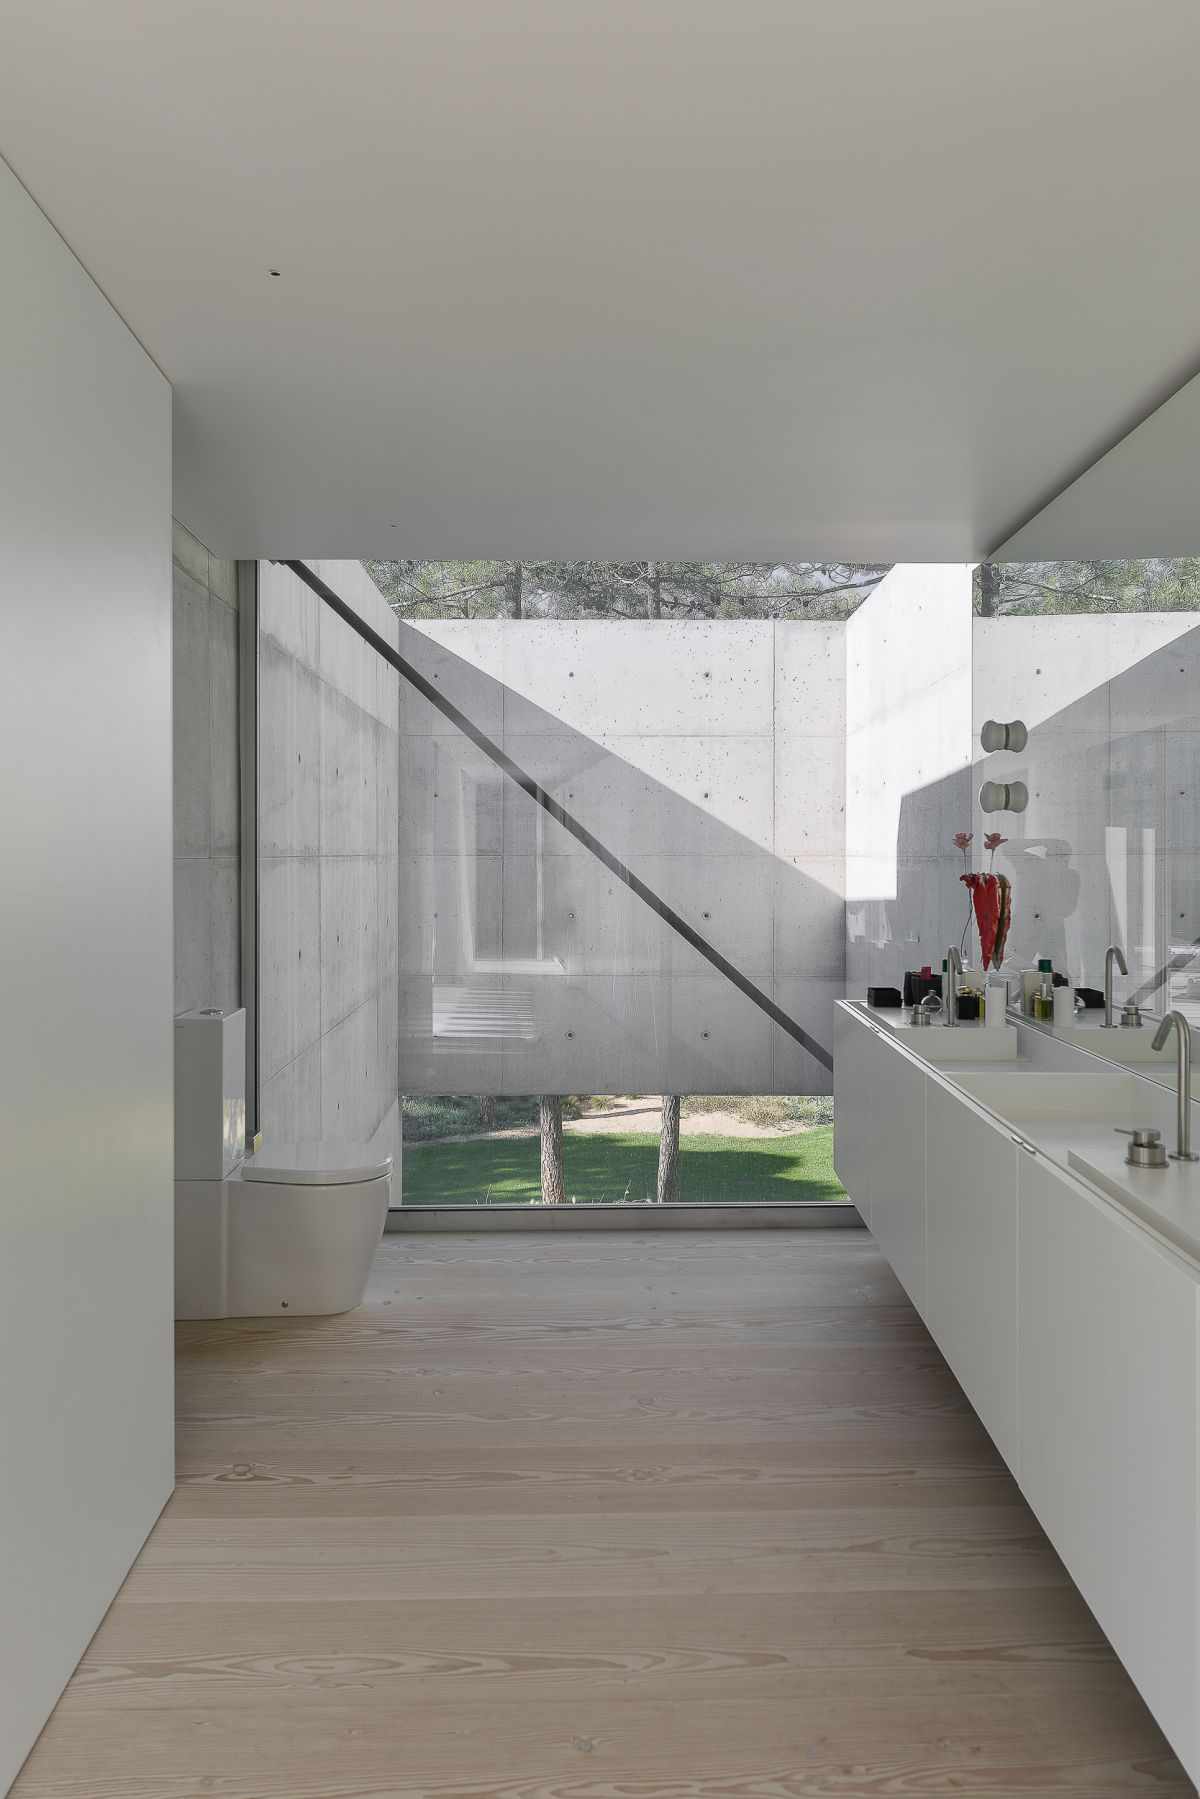 Part of the kitchen is bordered by the concrete structure outside